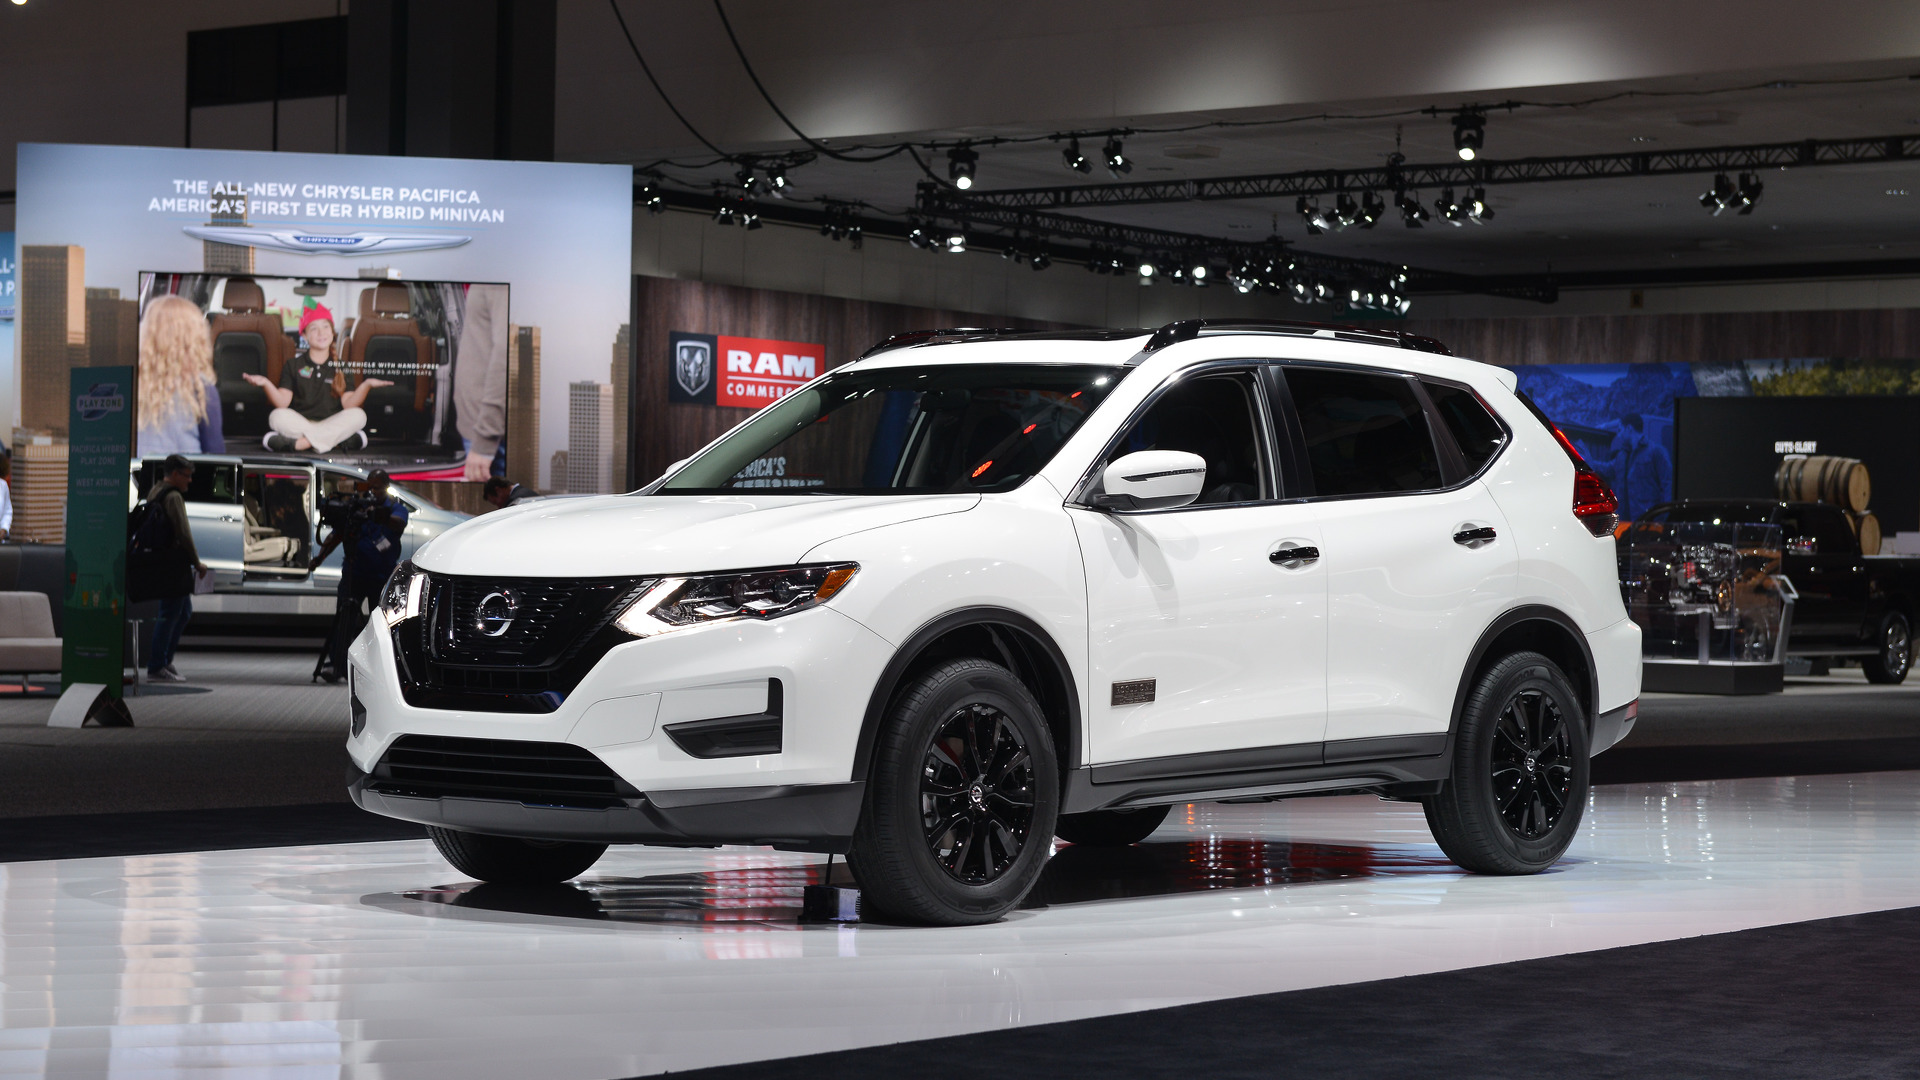 black nissan rogue with 2017 Nissan Rogue Star Wars La on 2016 Honda Cr V as well Updated 2019 Nissano Murano Spied First Time in addition 2018 Nissan Rogue Hybrid Price And Release Date also File 05 06 Nissan Altima besides Danh Gia Xe Santafe 2019.